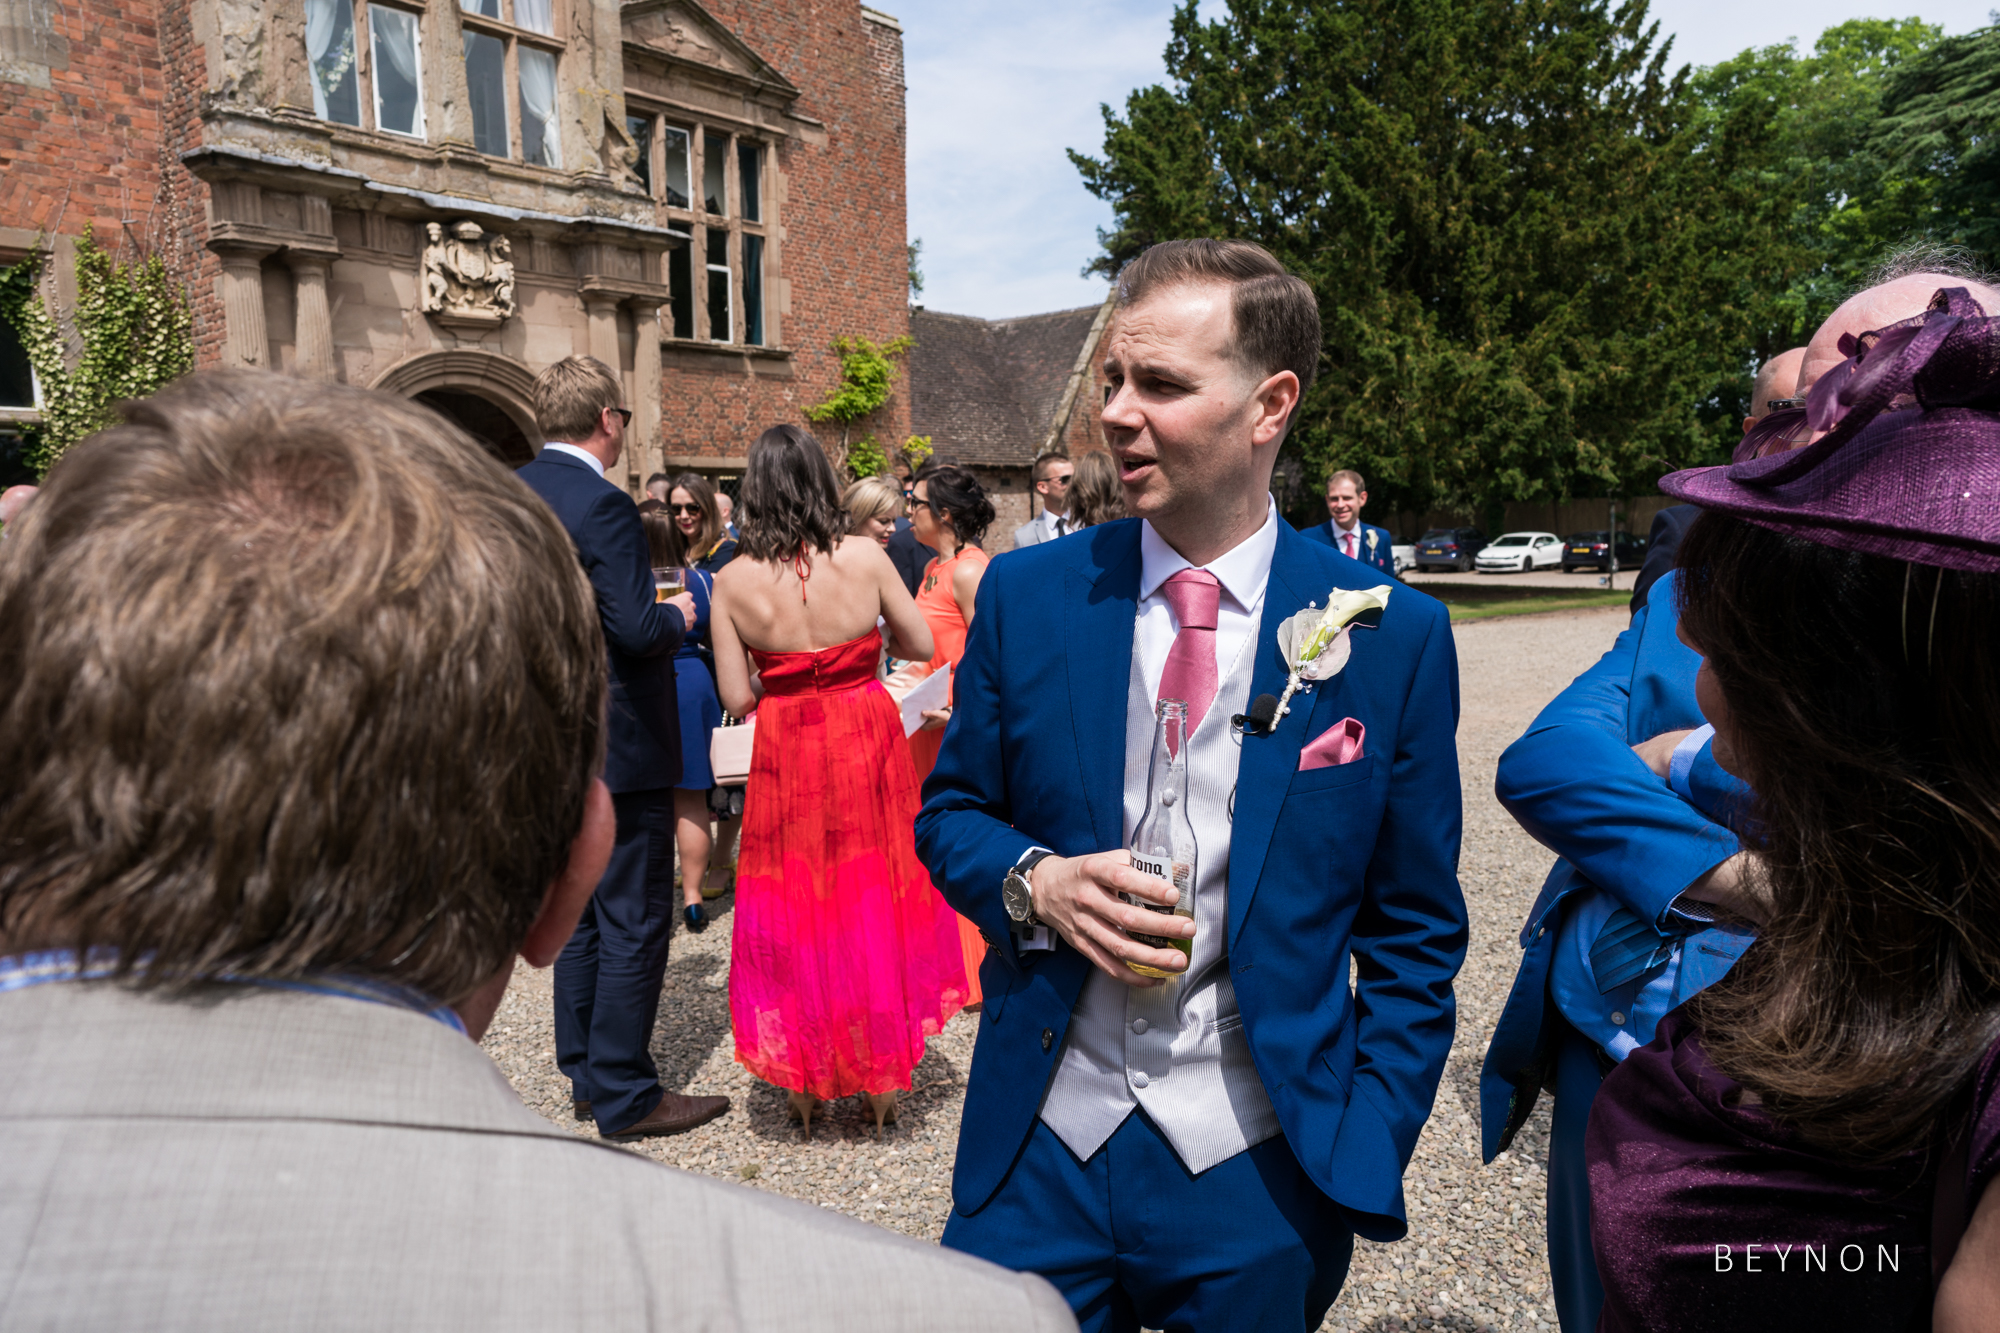 The Groom relaxes with guests